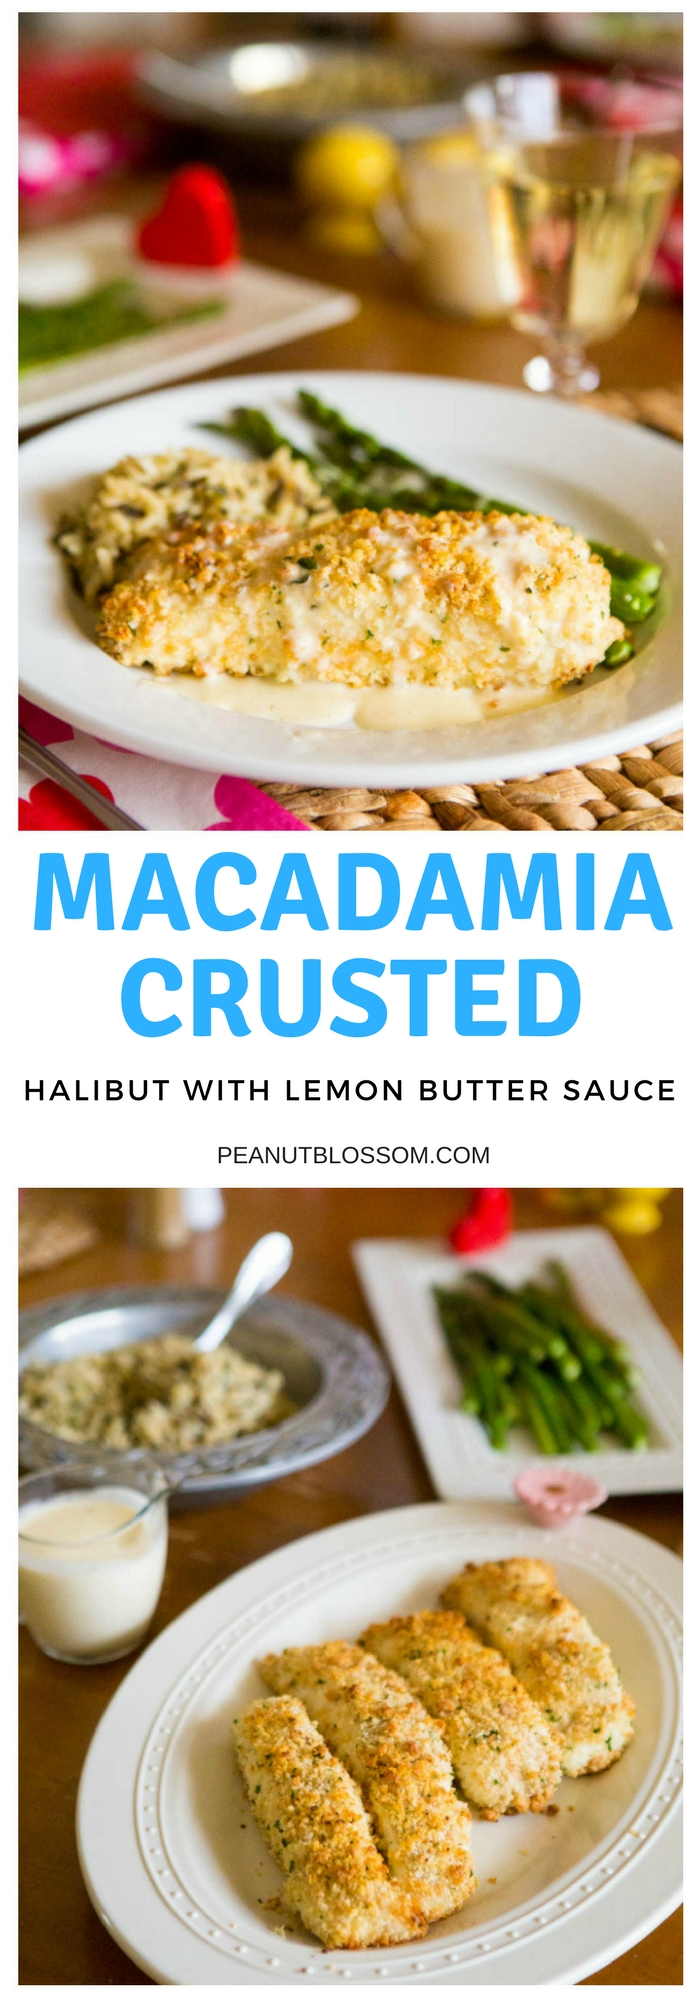 Macadamia crusted halibut with lemon butter cream sauce: 1 of 5 amazing easy halibut recipes